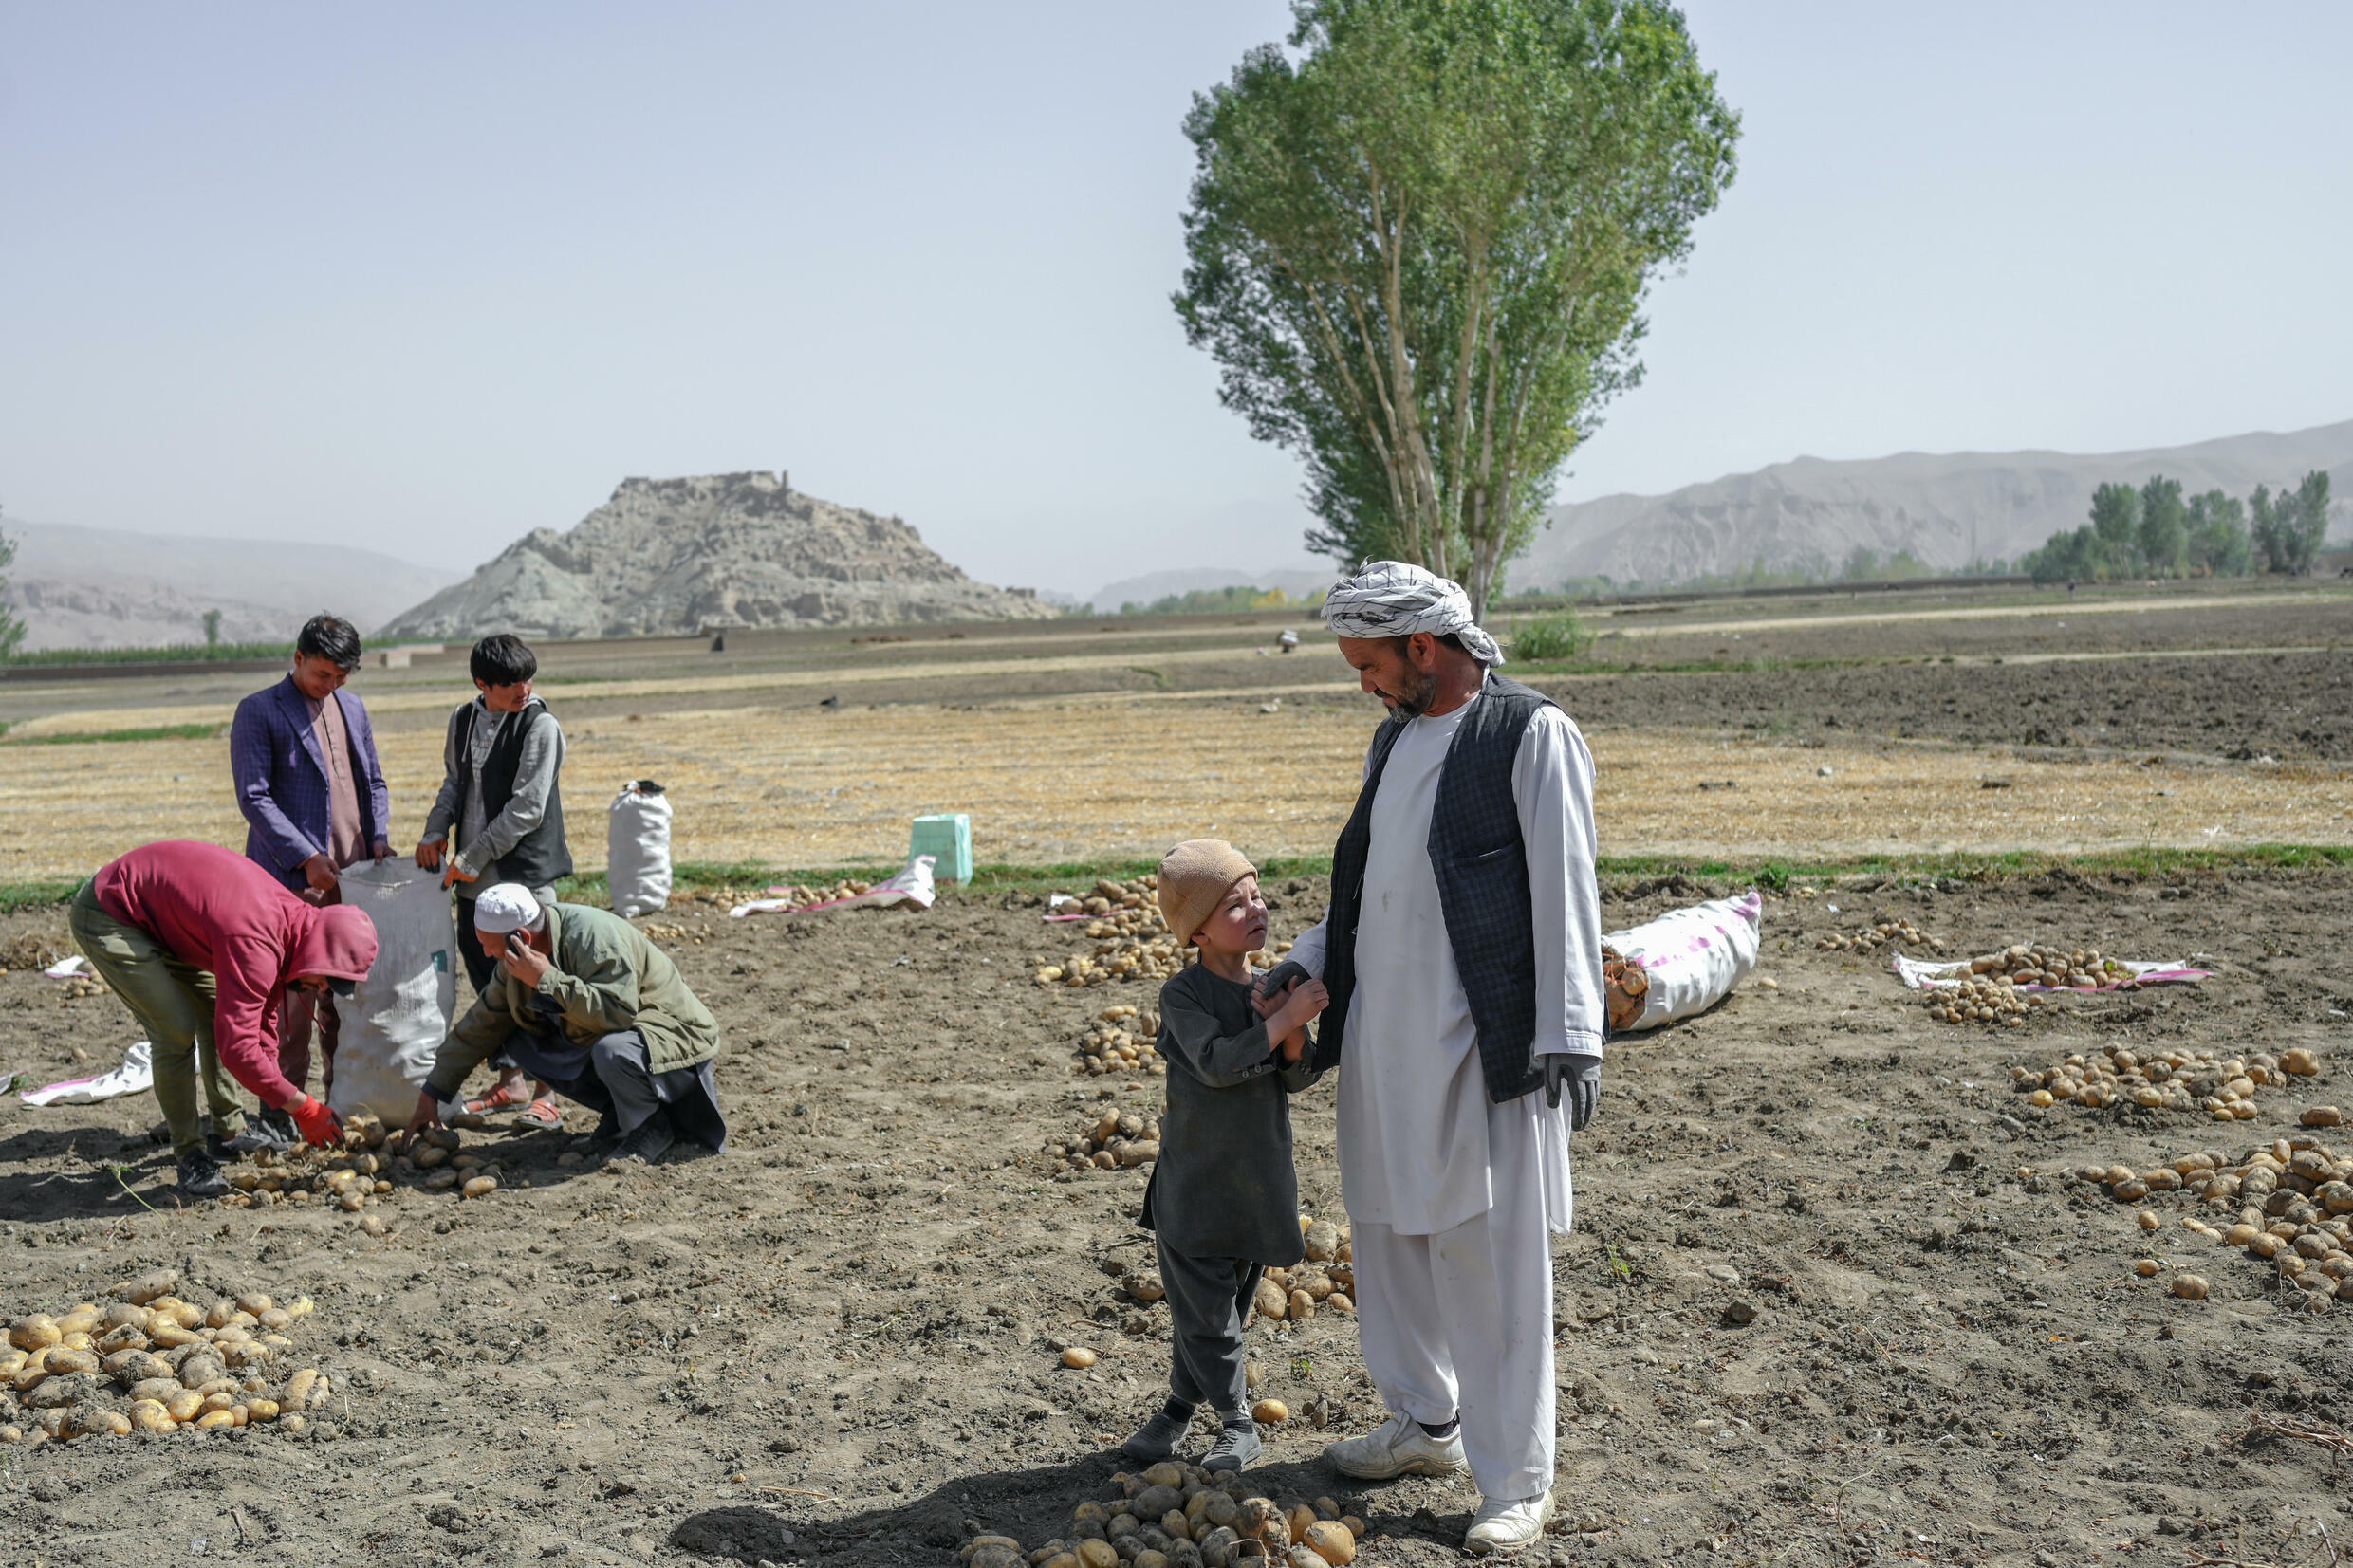 The Hazaras make up up to a fifth of the Afghan population